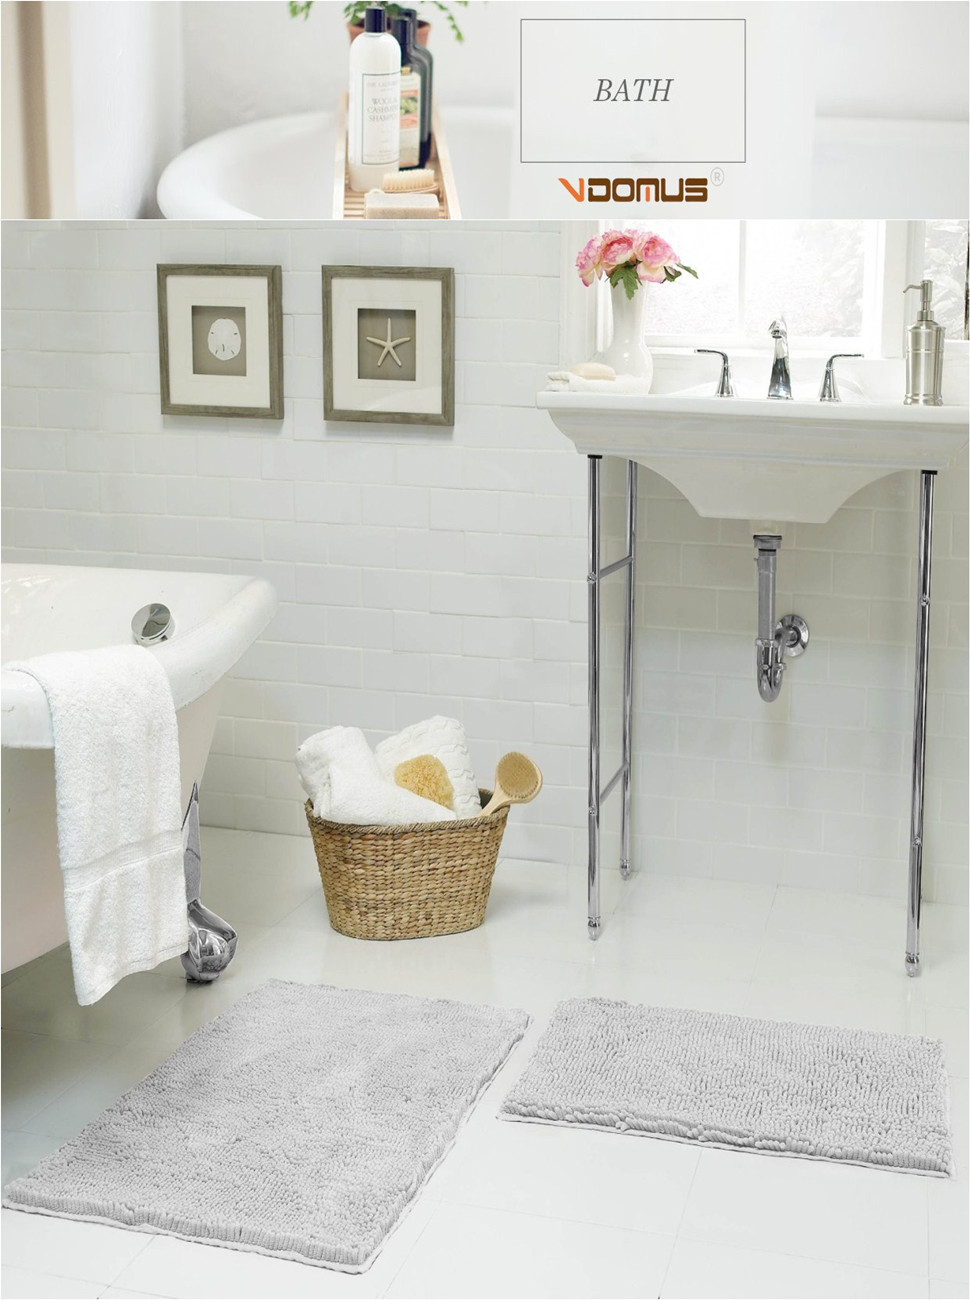 Amazon.com: VDOMUS Soft Microfiber Shag Bath Rug Absorbent Bathroom ...